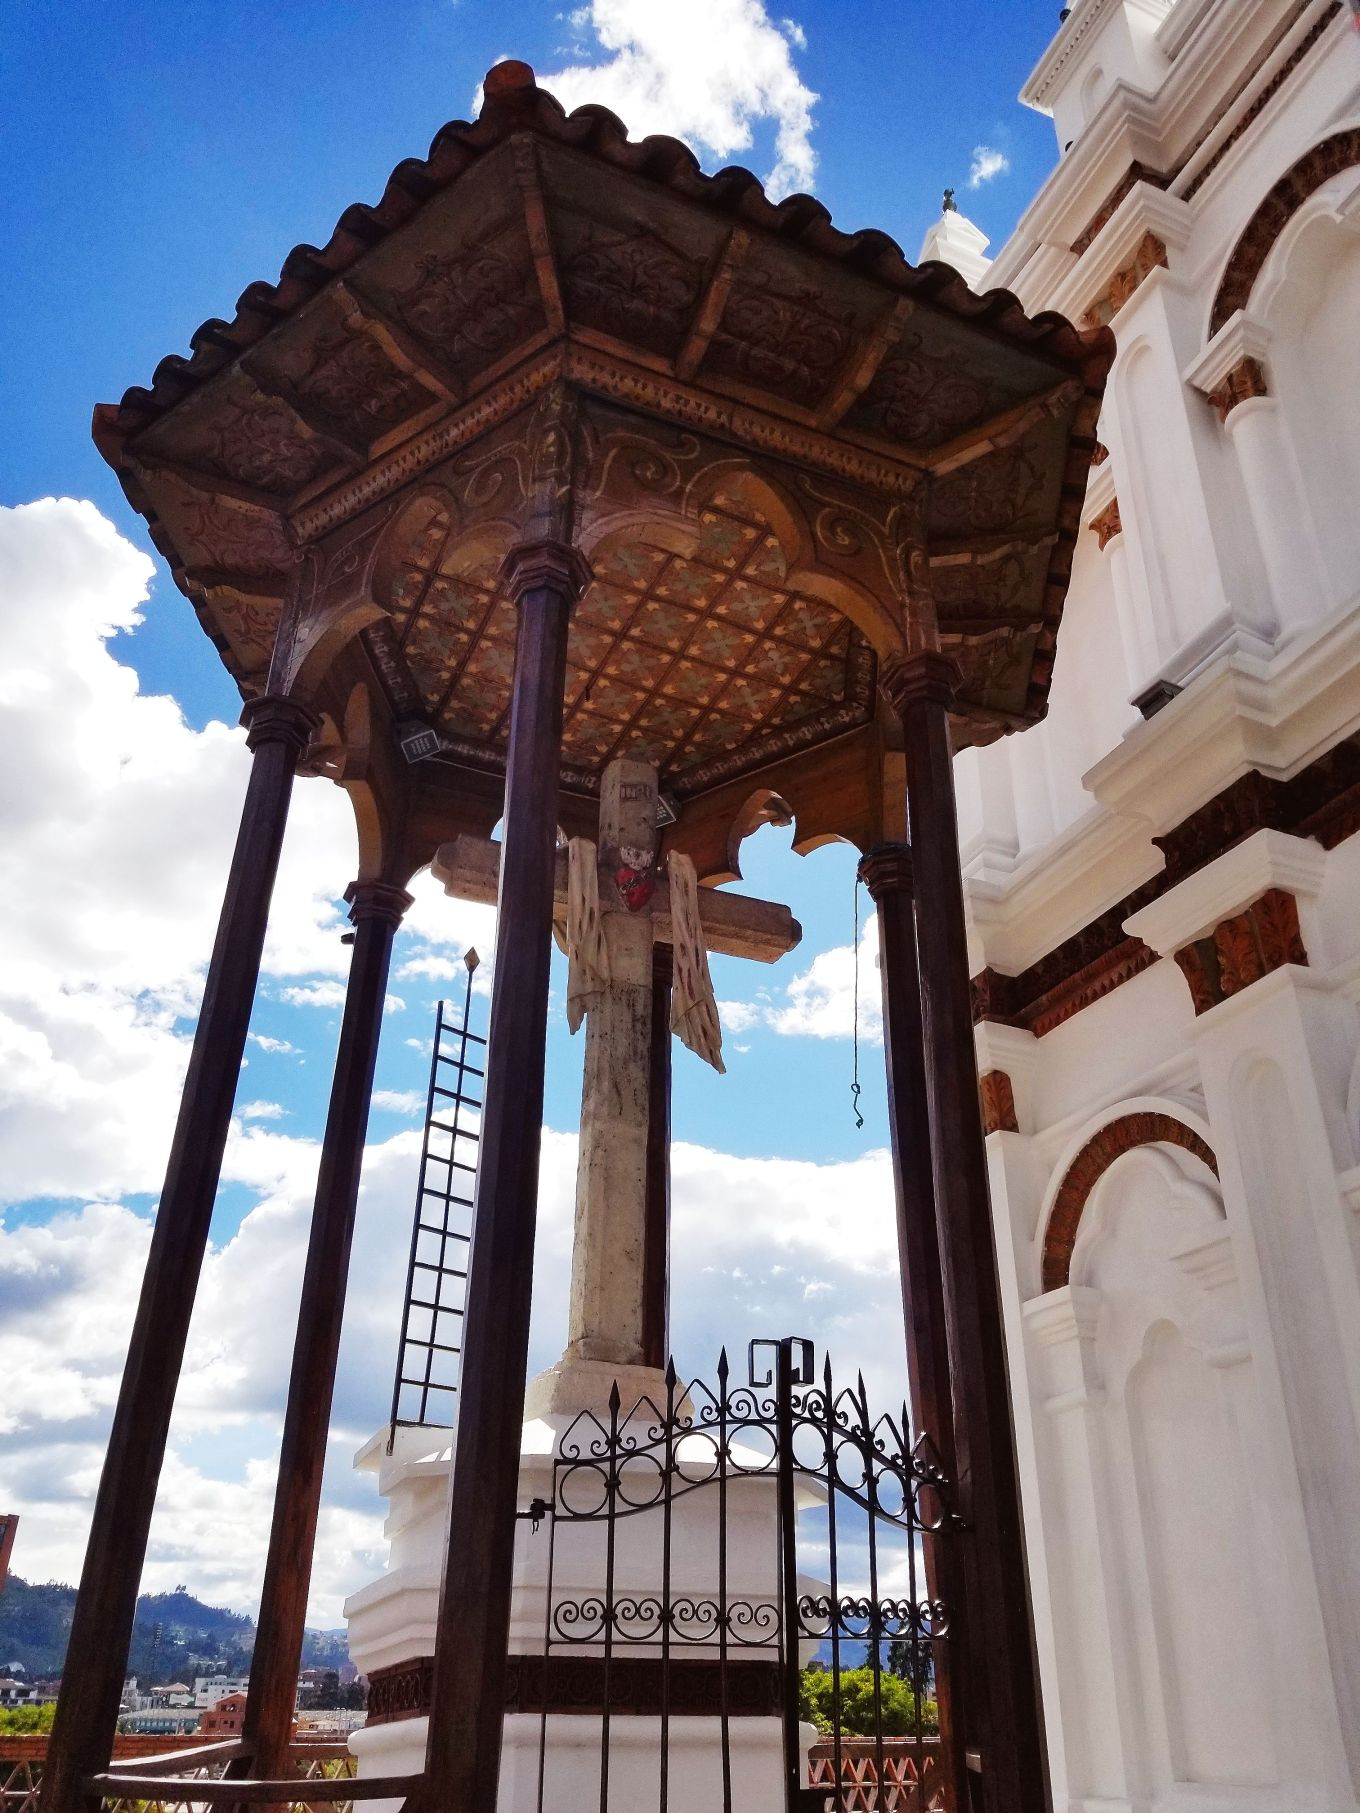 The gazebo outside La Iglesia de Todos Santos